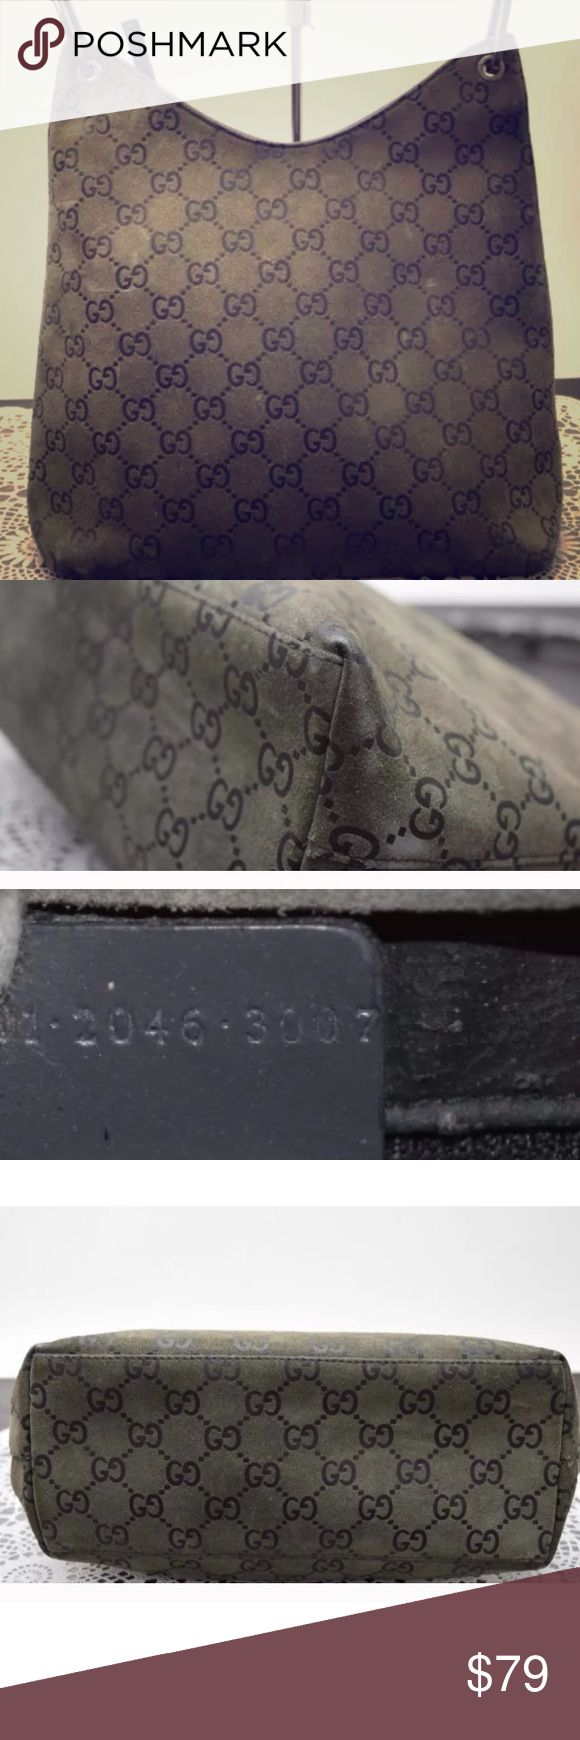 """authentic GUCCI suede bamboo handle 100% authentic olive suede green Gucci bag with bamboo handle. Preowned with some scuff marks on the suede as shown in photos, some chipping off paint on the bamboo. This is a cute bag with lots of life left !! Measures approximately 10 x 11 x 4"""". Price reflects condition of the bag Gucci Bags"""